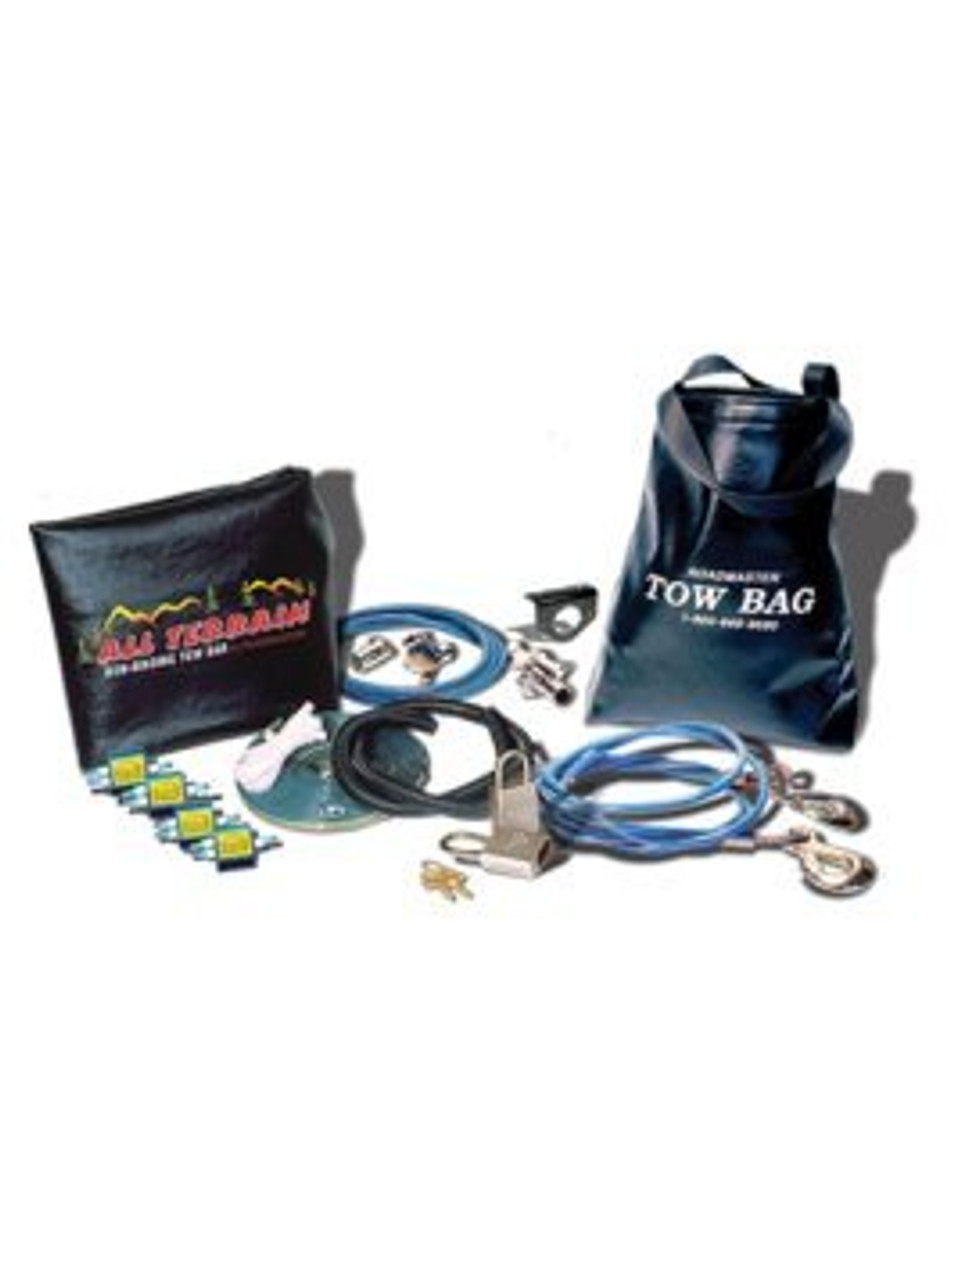 9243-2 --- Roadmaster Combo Kit for Falcon All Terrain and BlackHawk 2 All-Terrain Tow Bars with Coiled Cables & Coiled Wiring